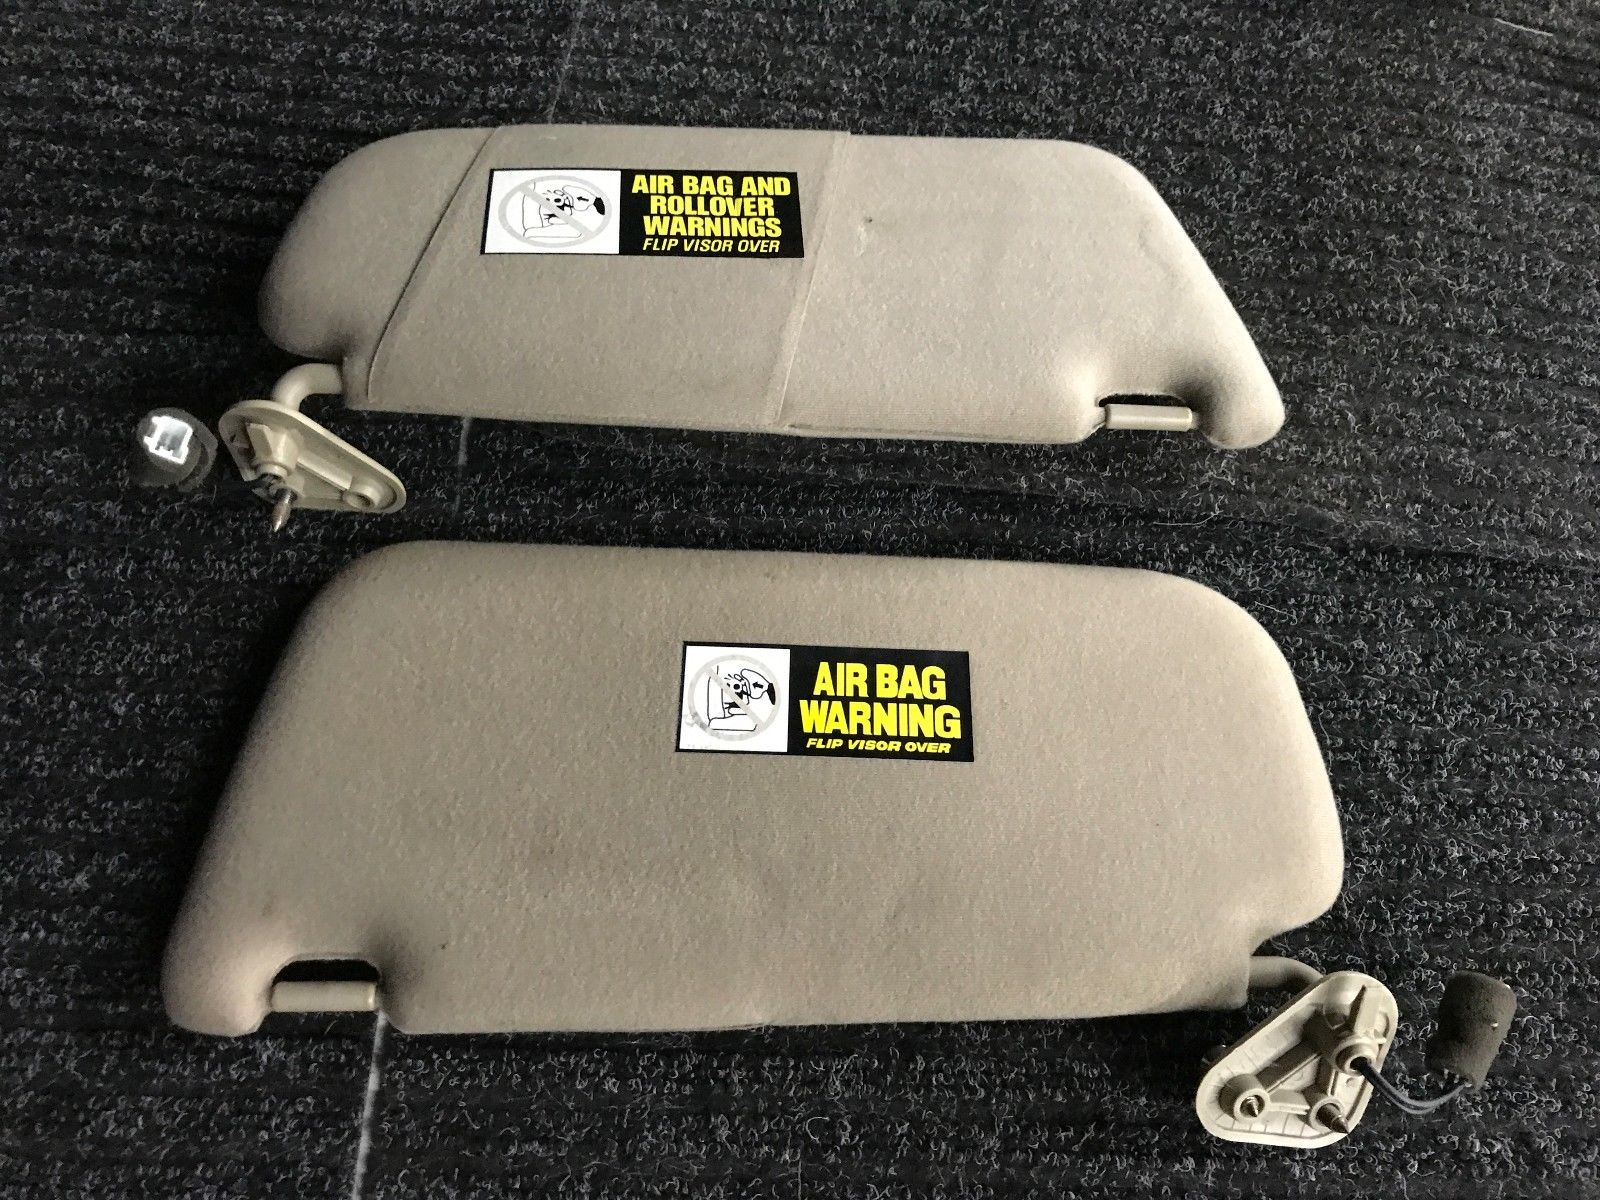 HYUNDAI SANTA FE LIGHTED SUN VISOR SET Tan Driver Passenger Shade Pair Set Brown Hyundai 29